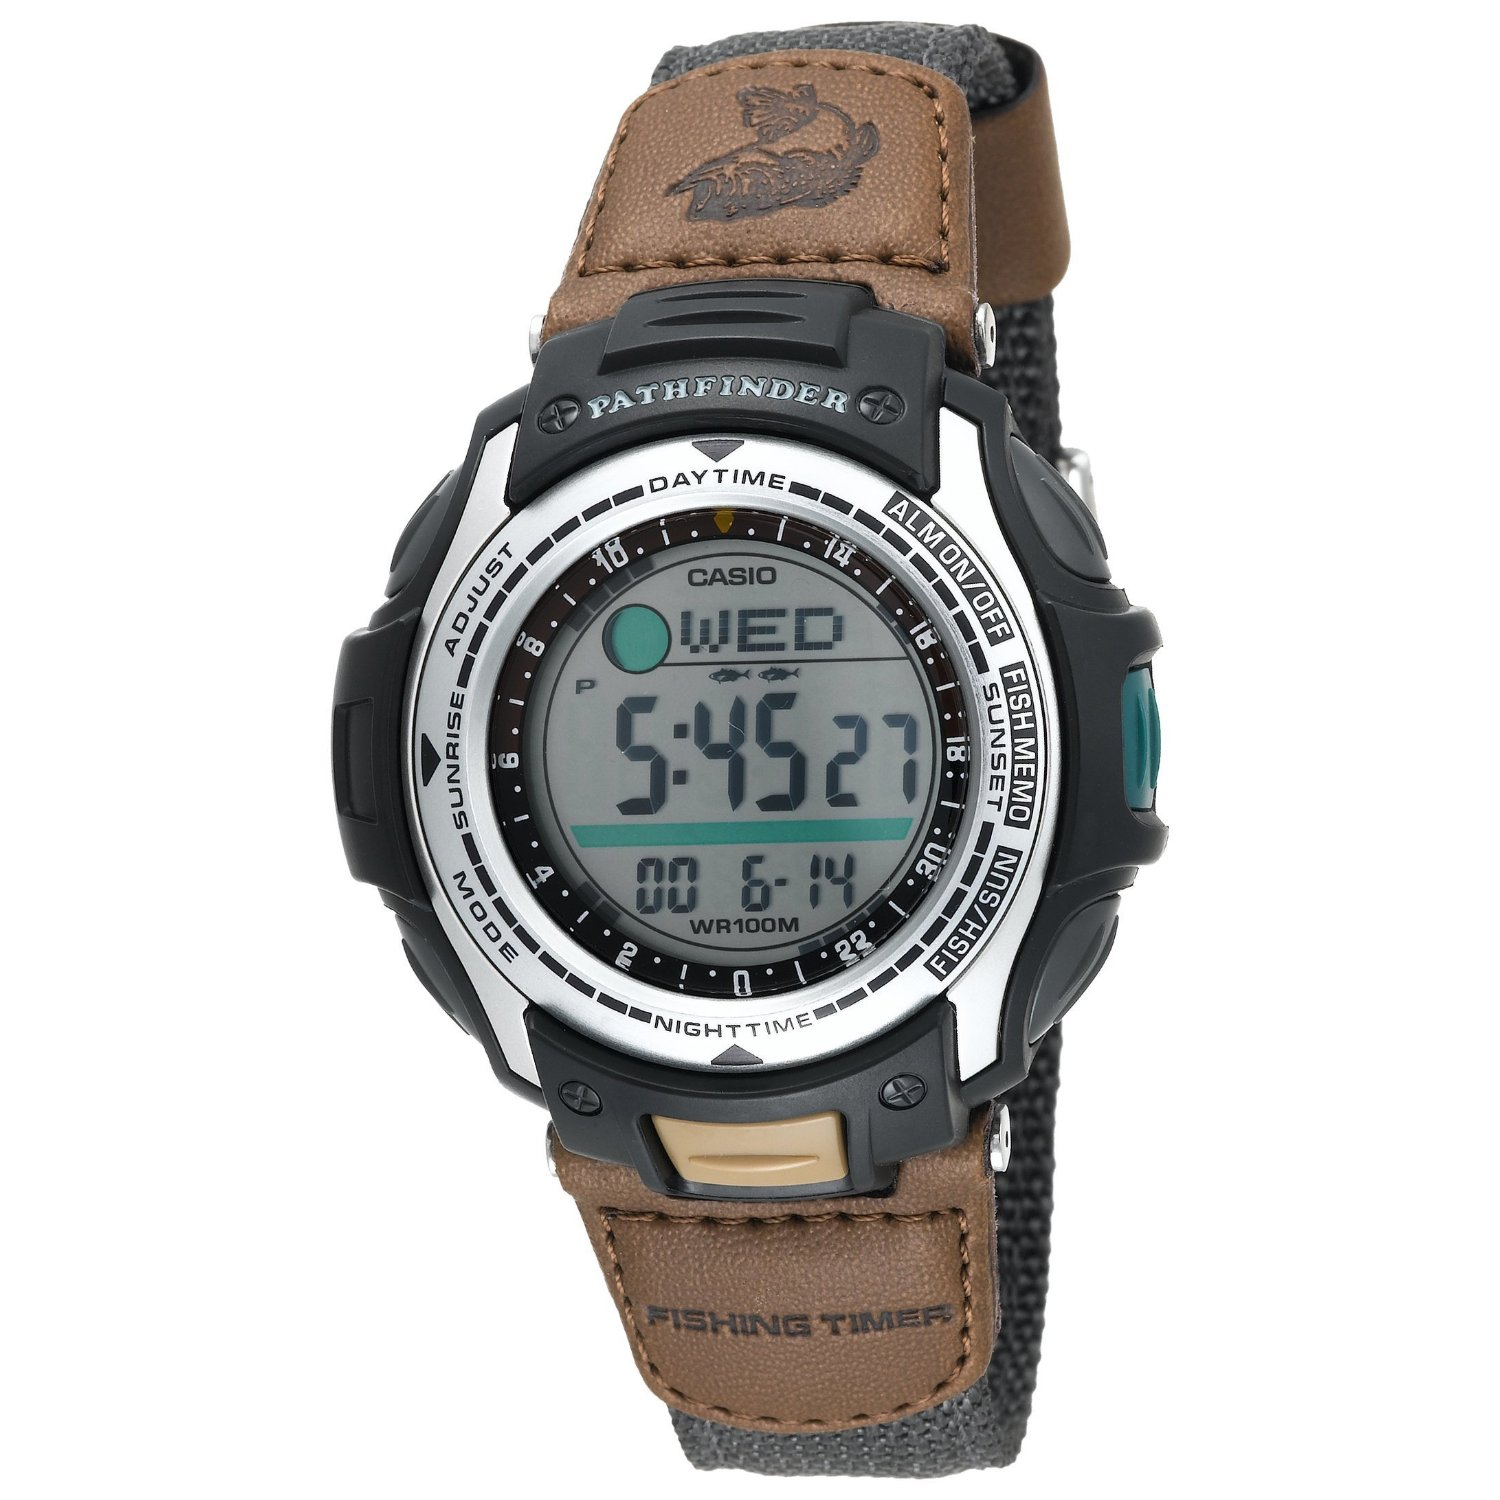 Часы CASIO Forester FT-500WC-5BVCF Оригинал Спорти